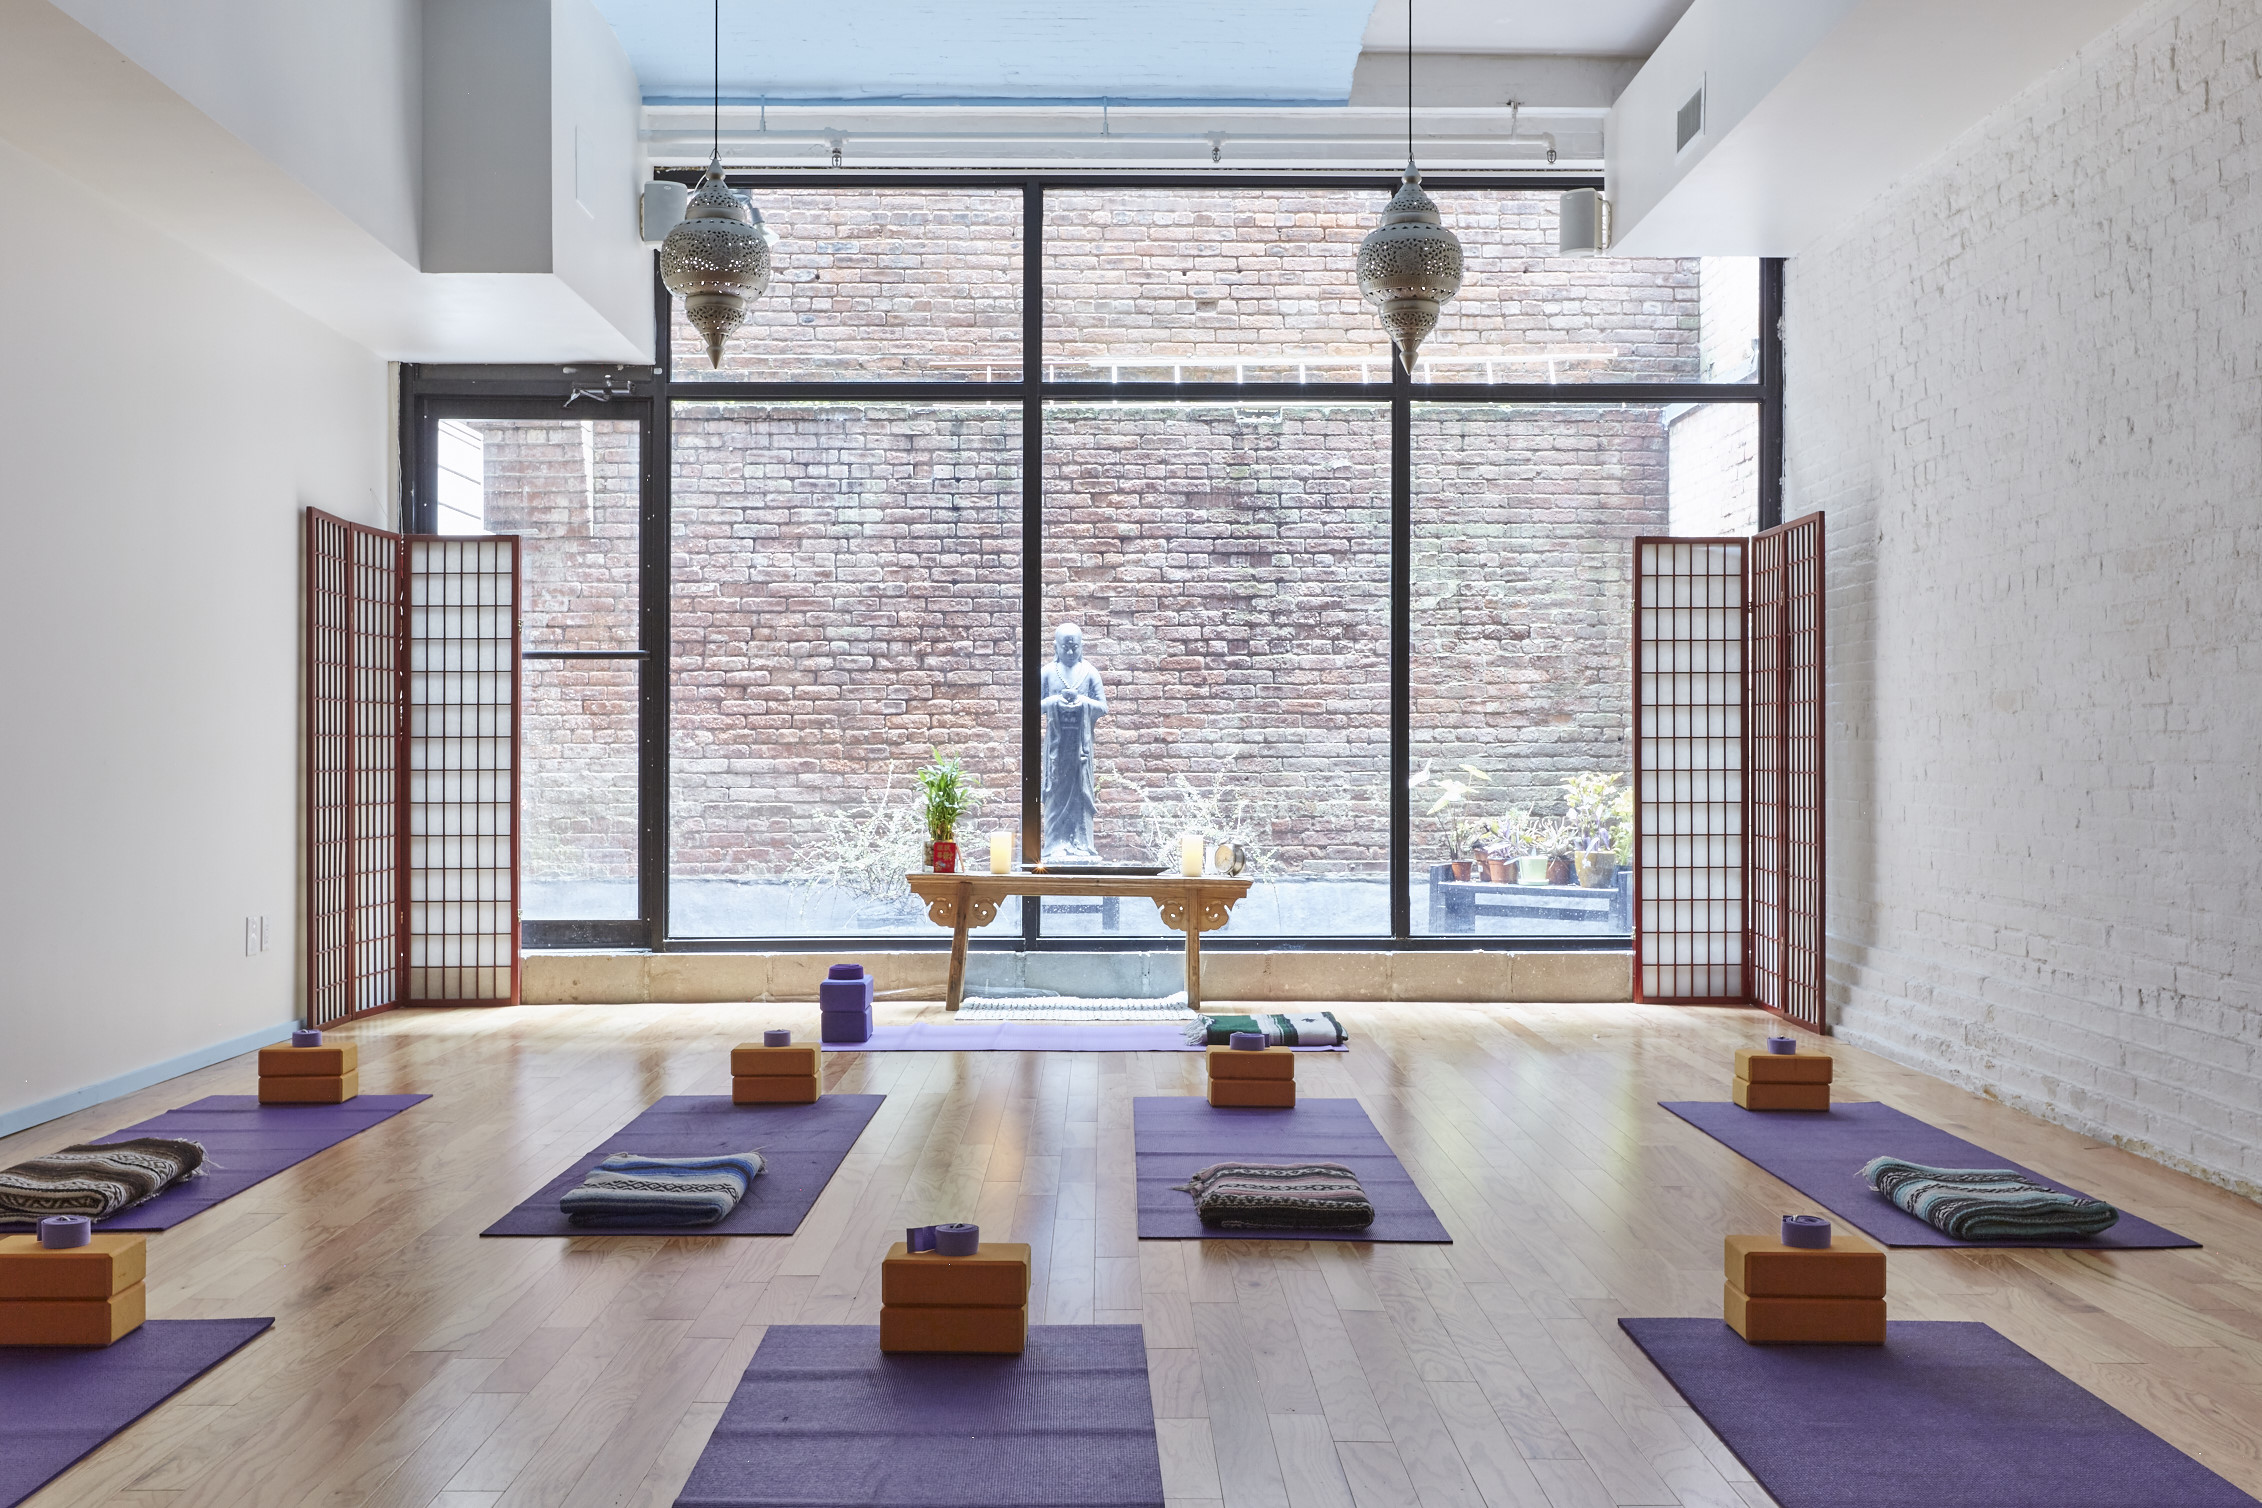 Location: - Reflections Center for Conscious Living & YogaGarden Studio227 East 24th St.New York, NY 10010